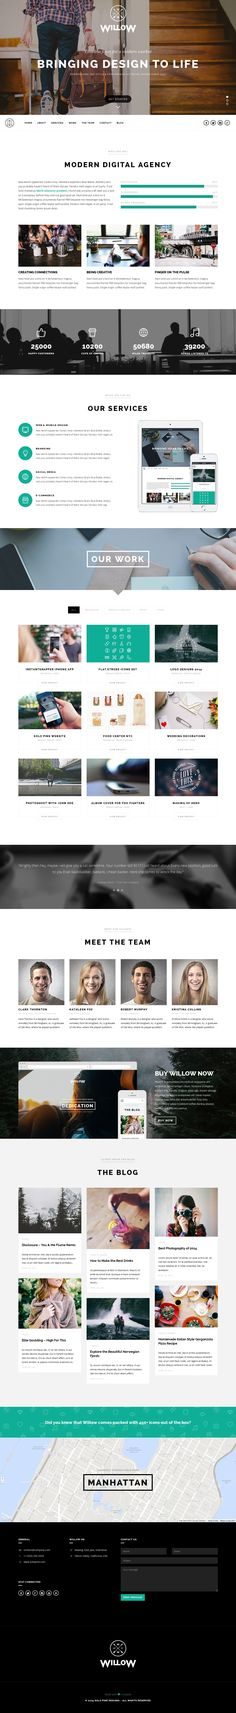 Willow - A One Page Multi-Purpose Theme - Creative WordPress Themes Awards Design Web, Layout Design, Web Layout, Page Design, Website Layout, Email Design, Flyer Design, Website Design Inspiration, Layout Inspiration